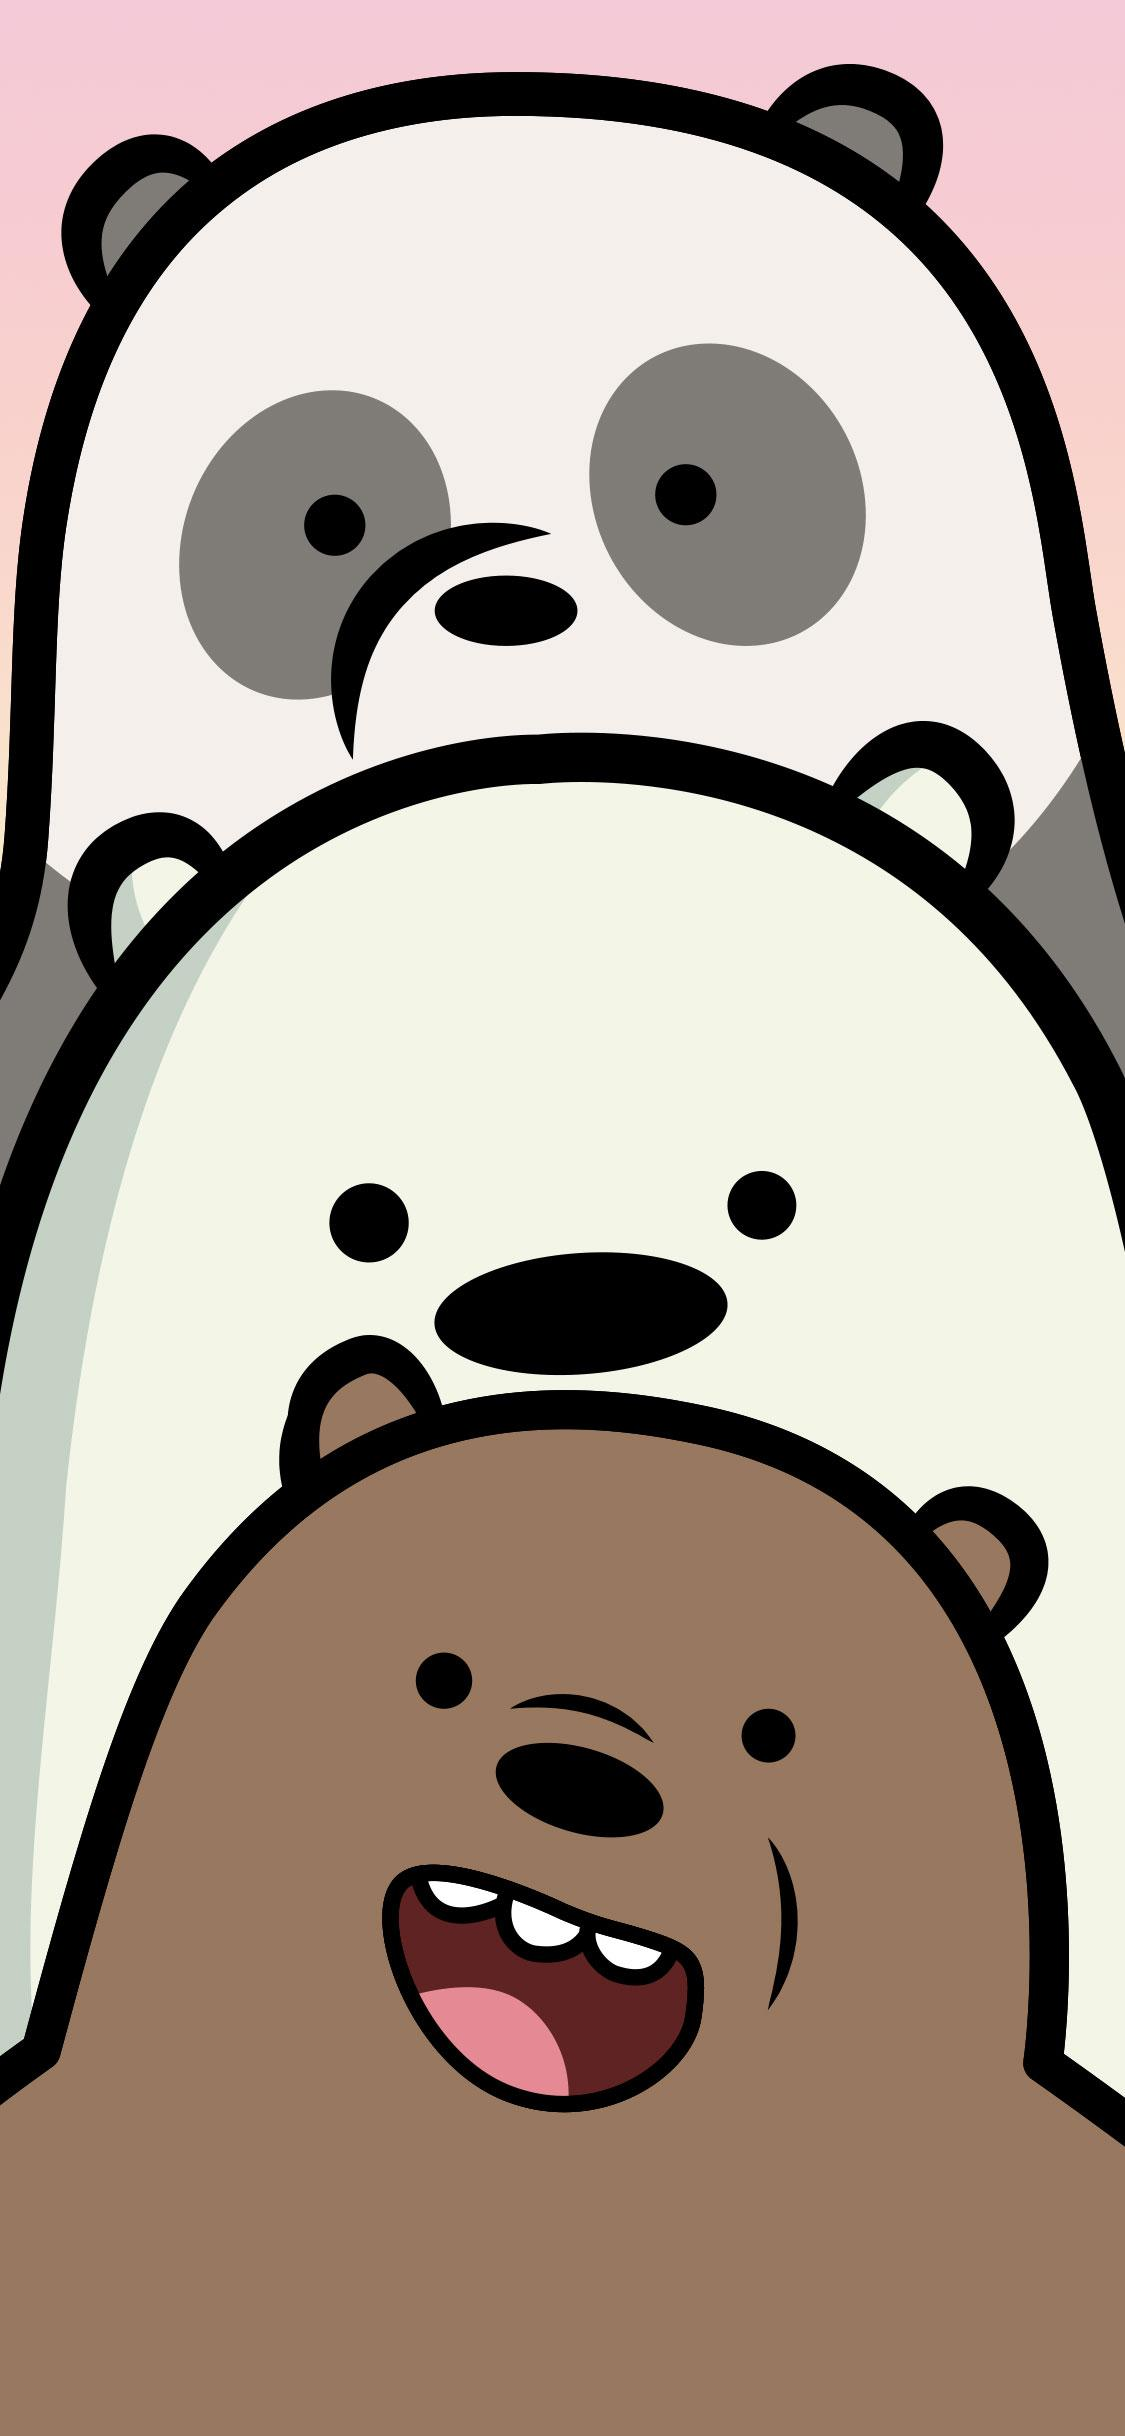 We Bare Bears HD iPhone Wallpapers - Wallpaper Cave